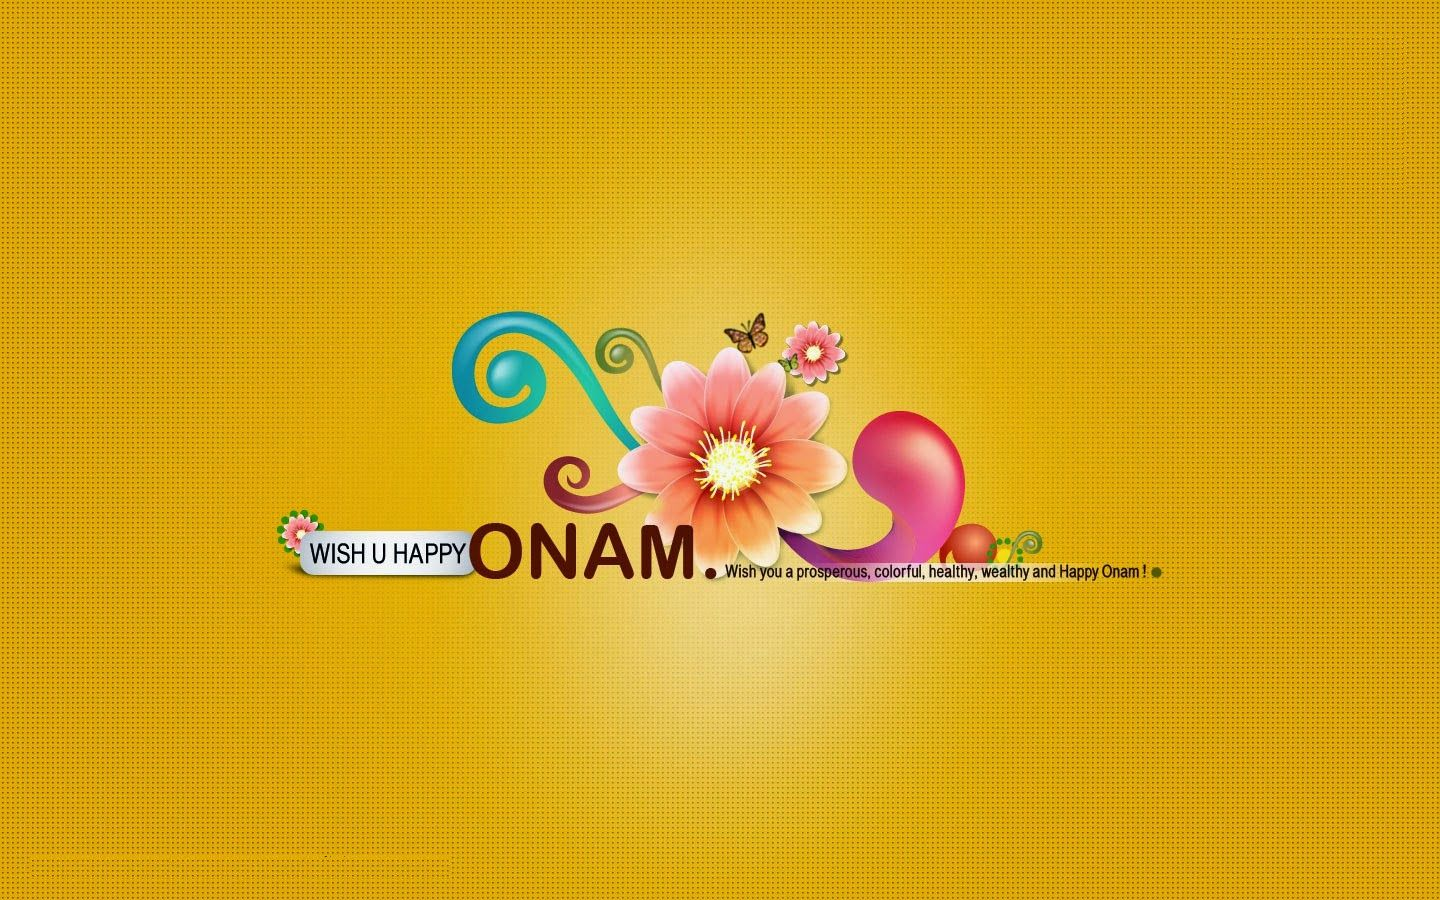 Onam Hd Images For 2015 Stock Photography Pinterest Hd Images